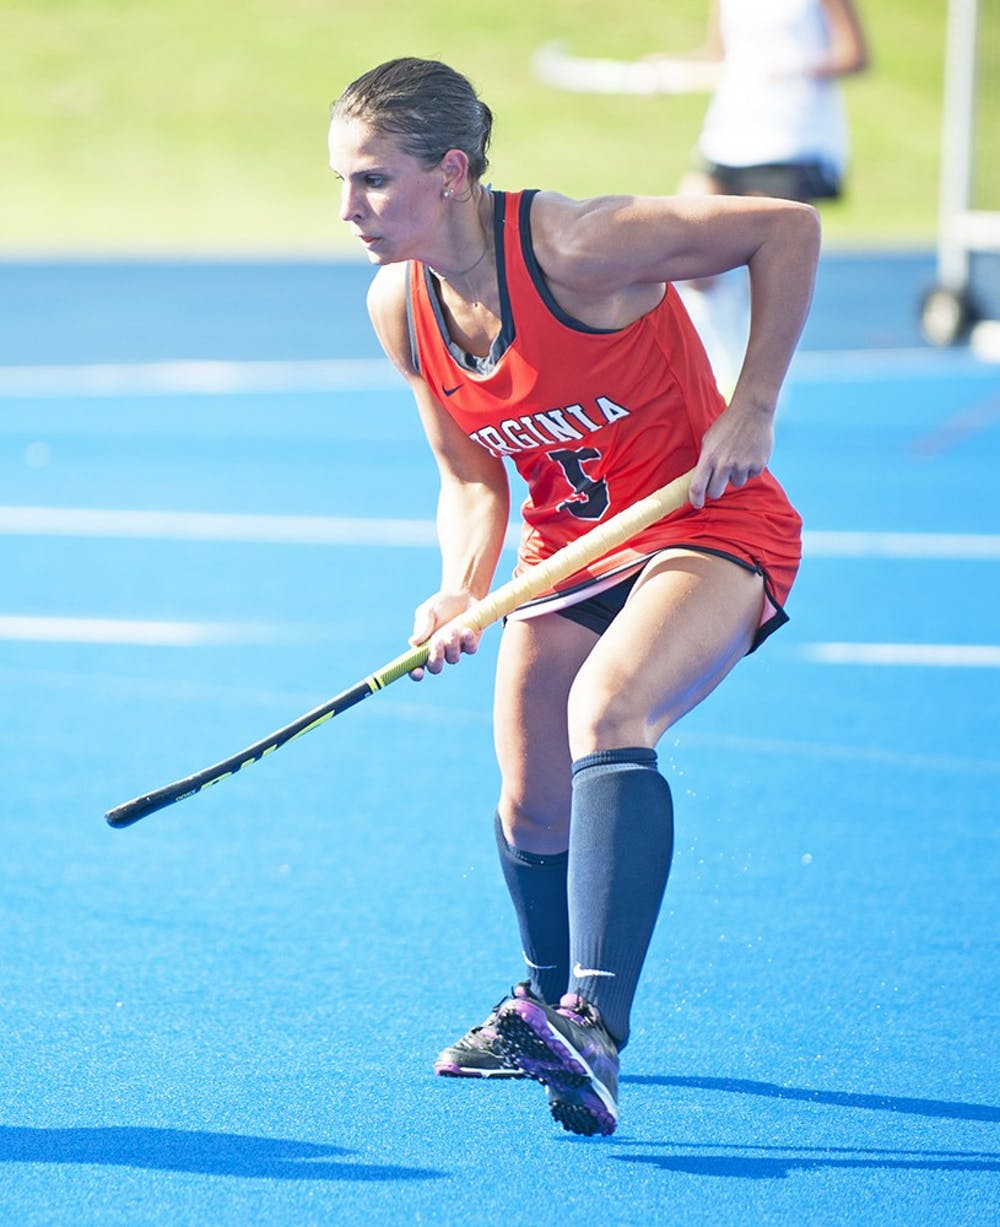 <p>Senior forward Caleigh Foust's aggressive play on offense may be just what the Cavaliers need to move past some early season up-and-down play.&nbsp;</p>